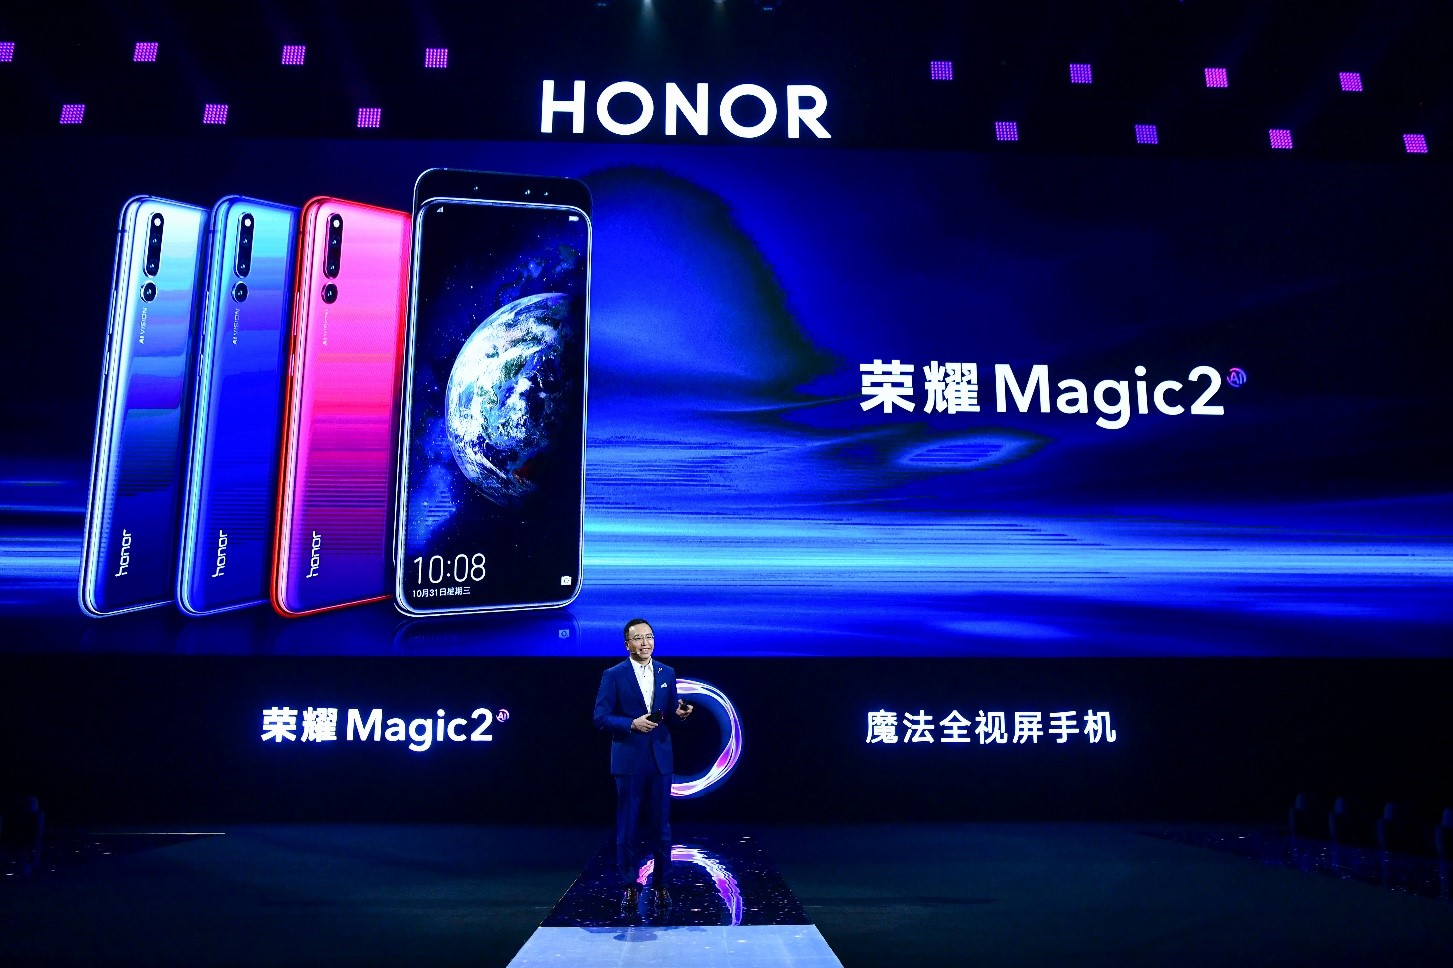 HONOR Magic2 Officially Unveiled in China